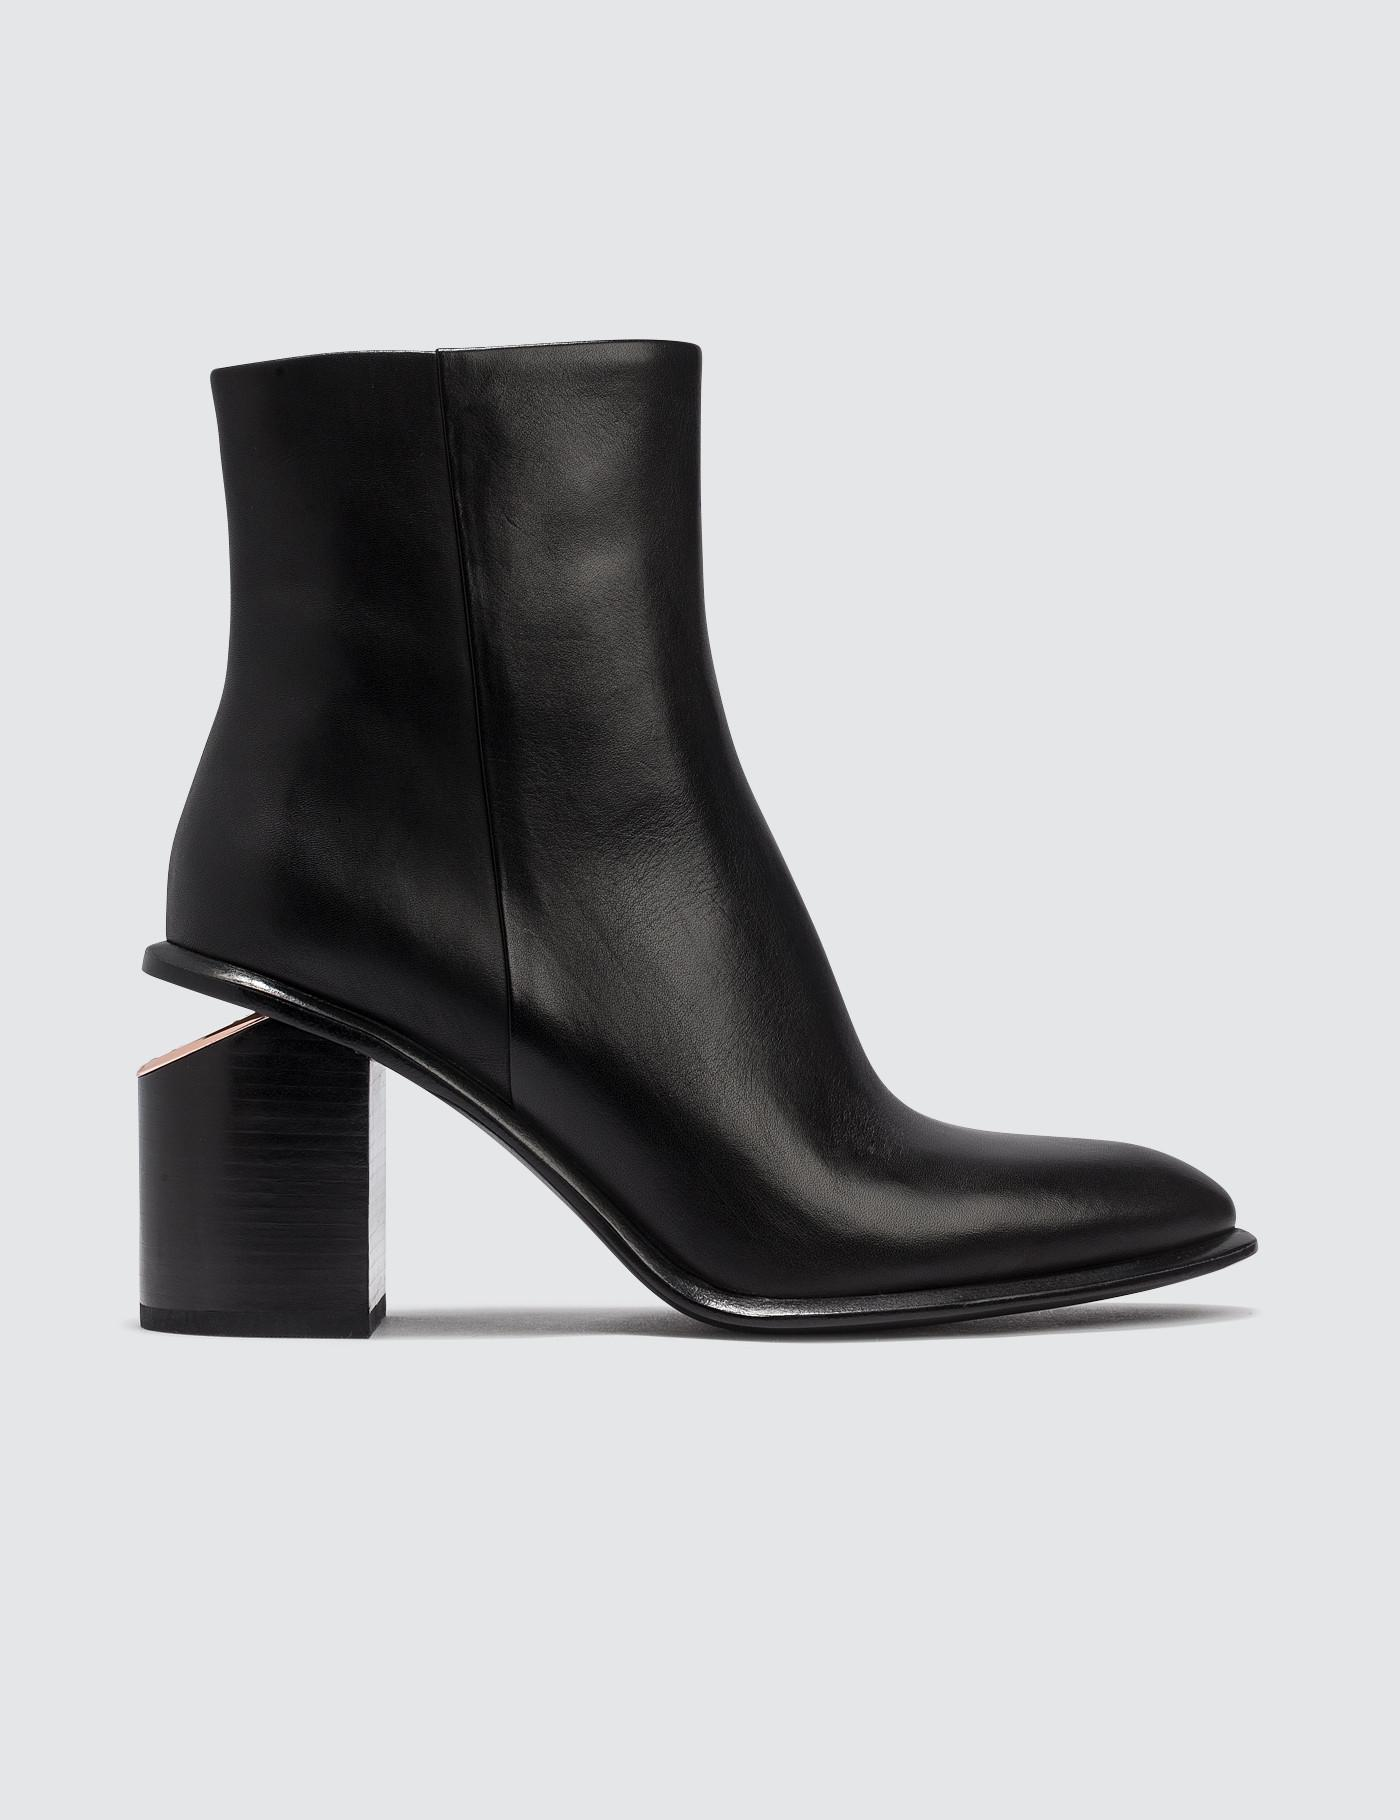 c4ce7bf24f95 Alexander Wang Anna Boot in Black - Lyst